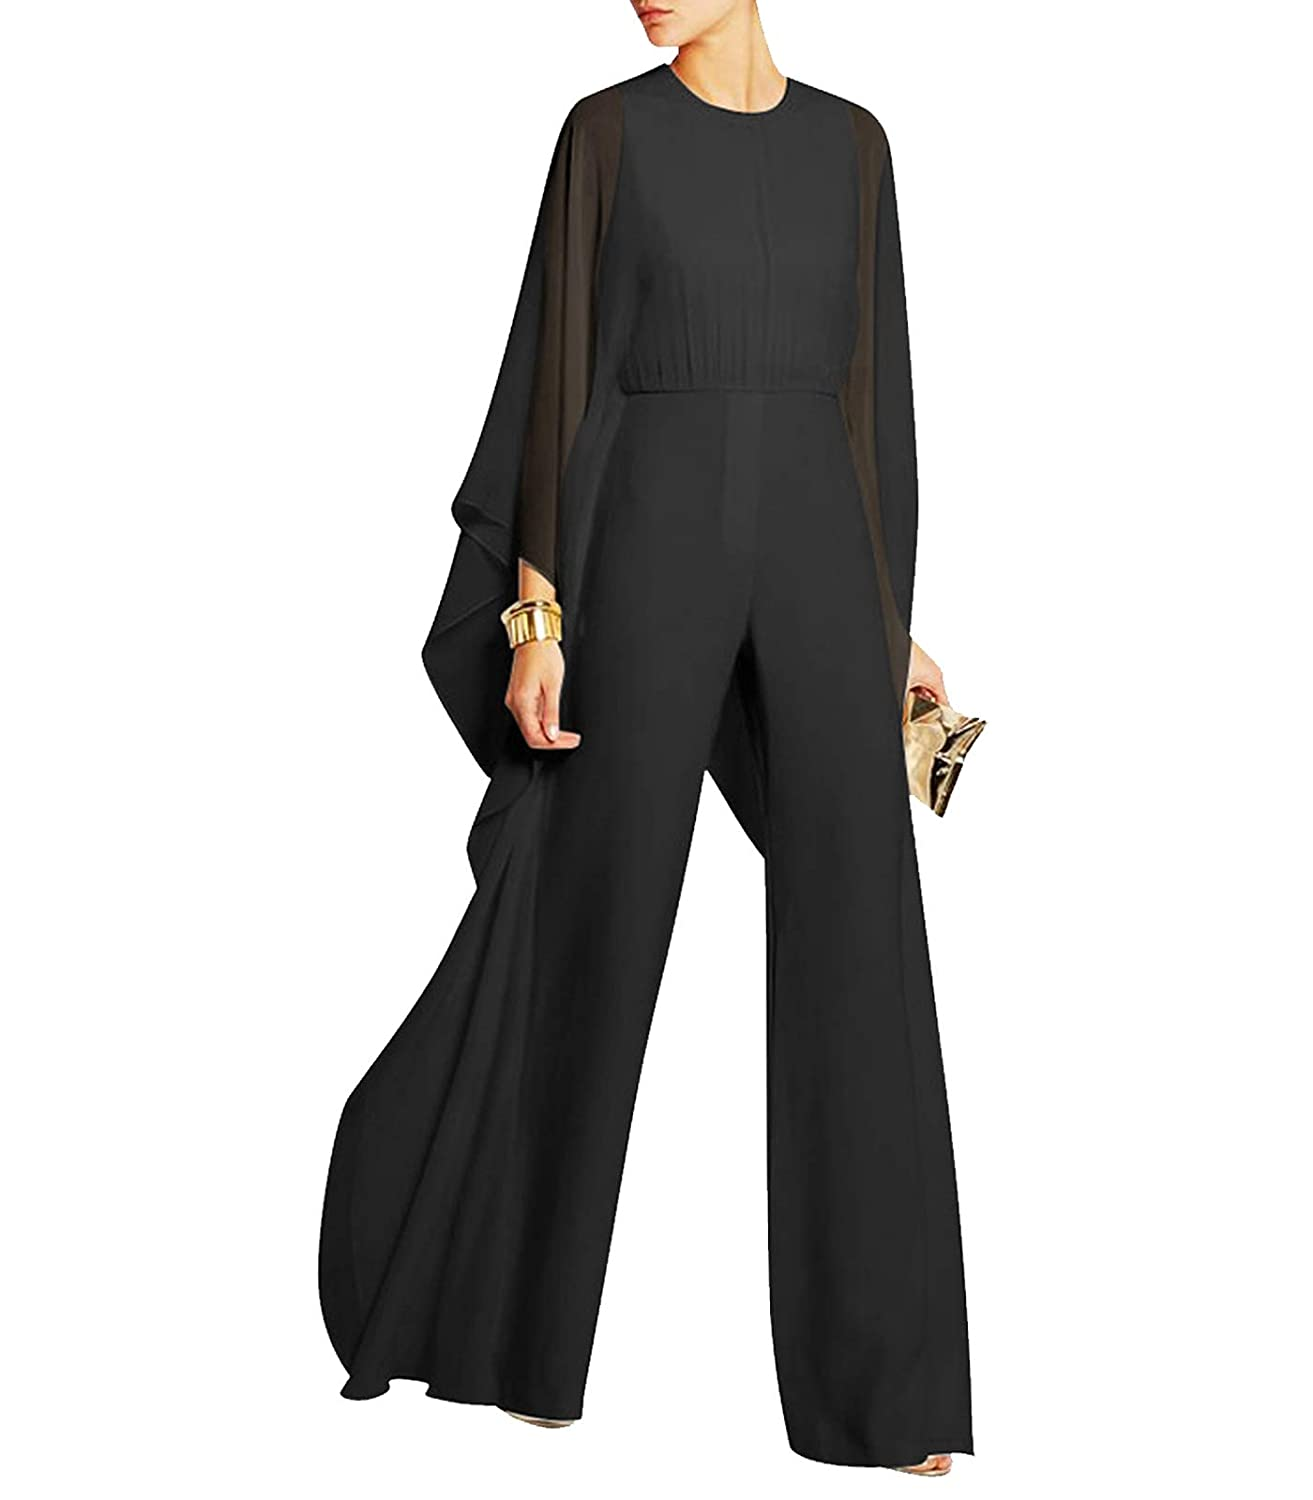 420636371c1d YIFAN DREAM Women Jumpsuit Playsuit Chiffon Long Pants Summer Elegant Party  Evening Clubwear Loose Wide Leg Trousers Long Sleeve Outfit Rompers Dress  for ...